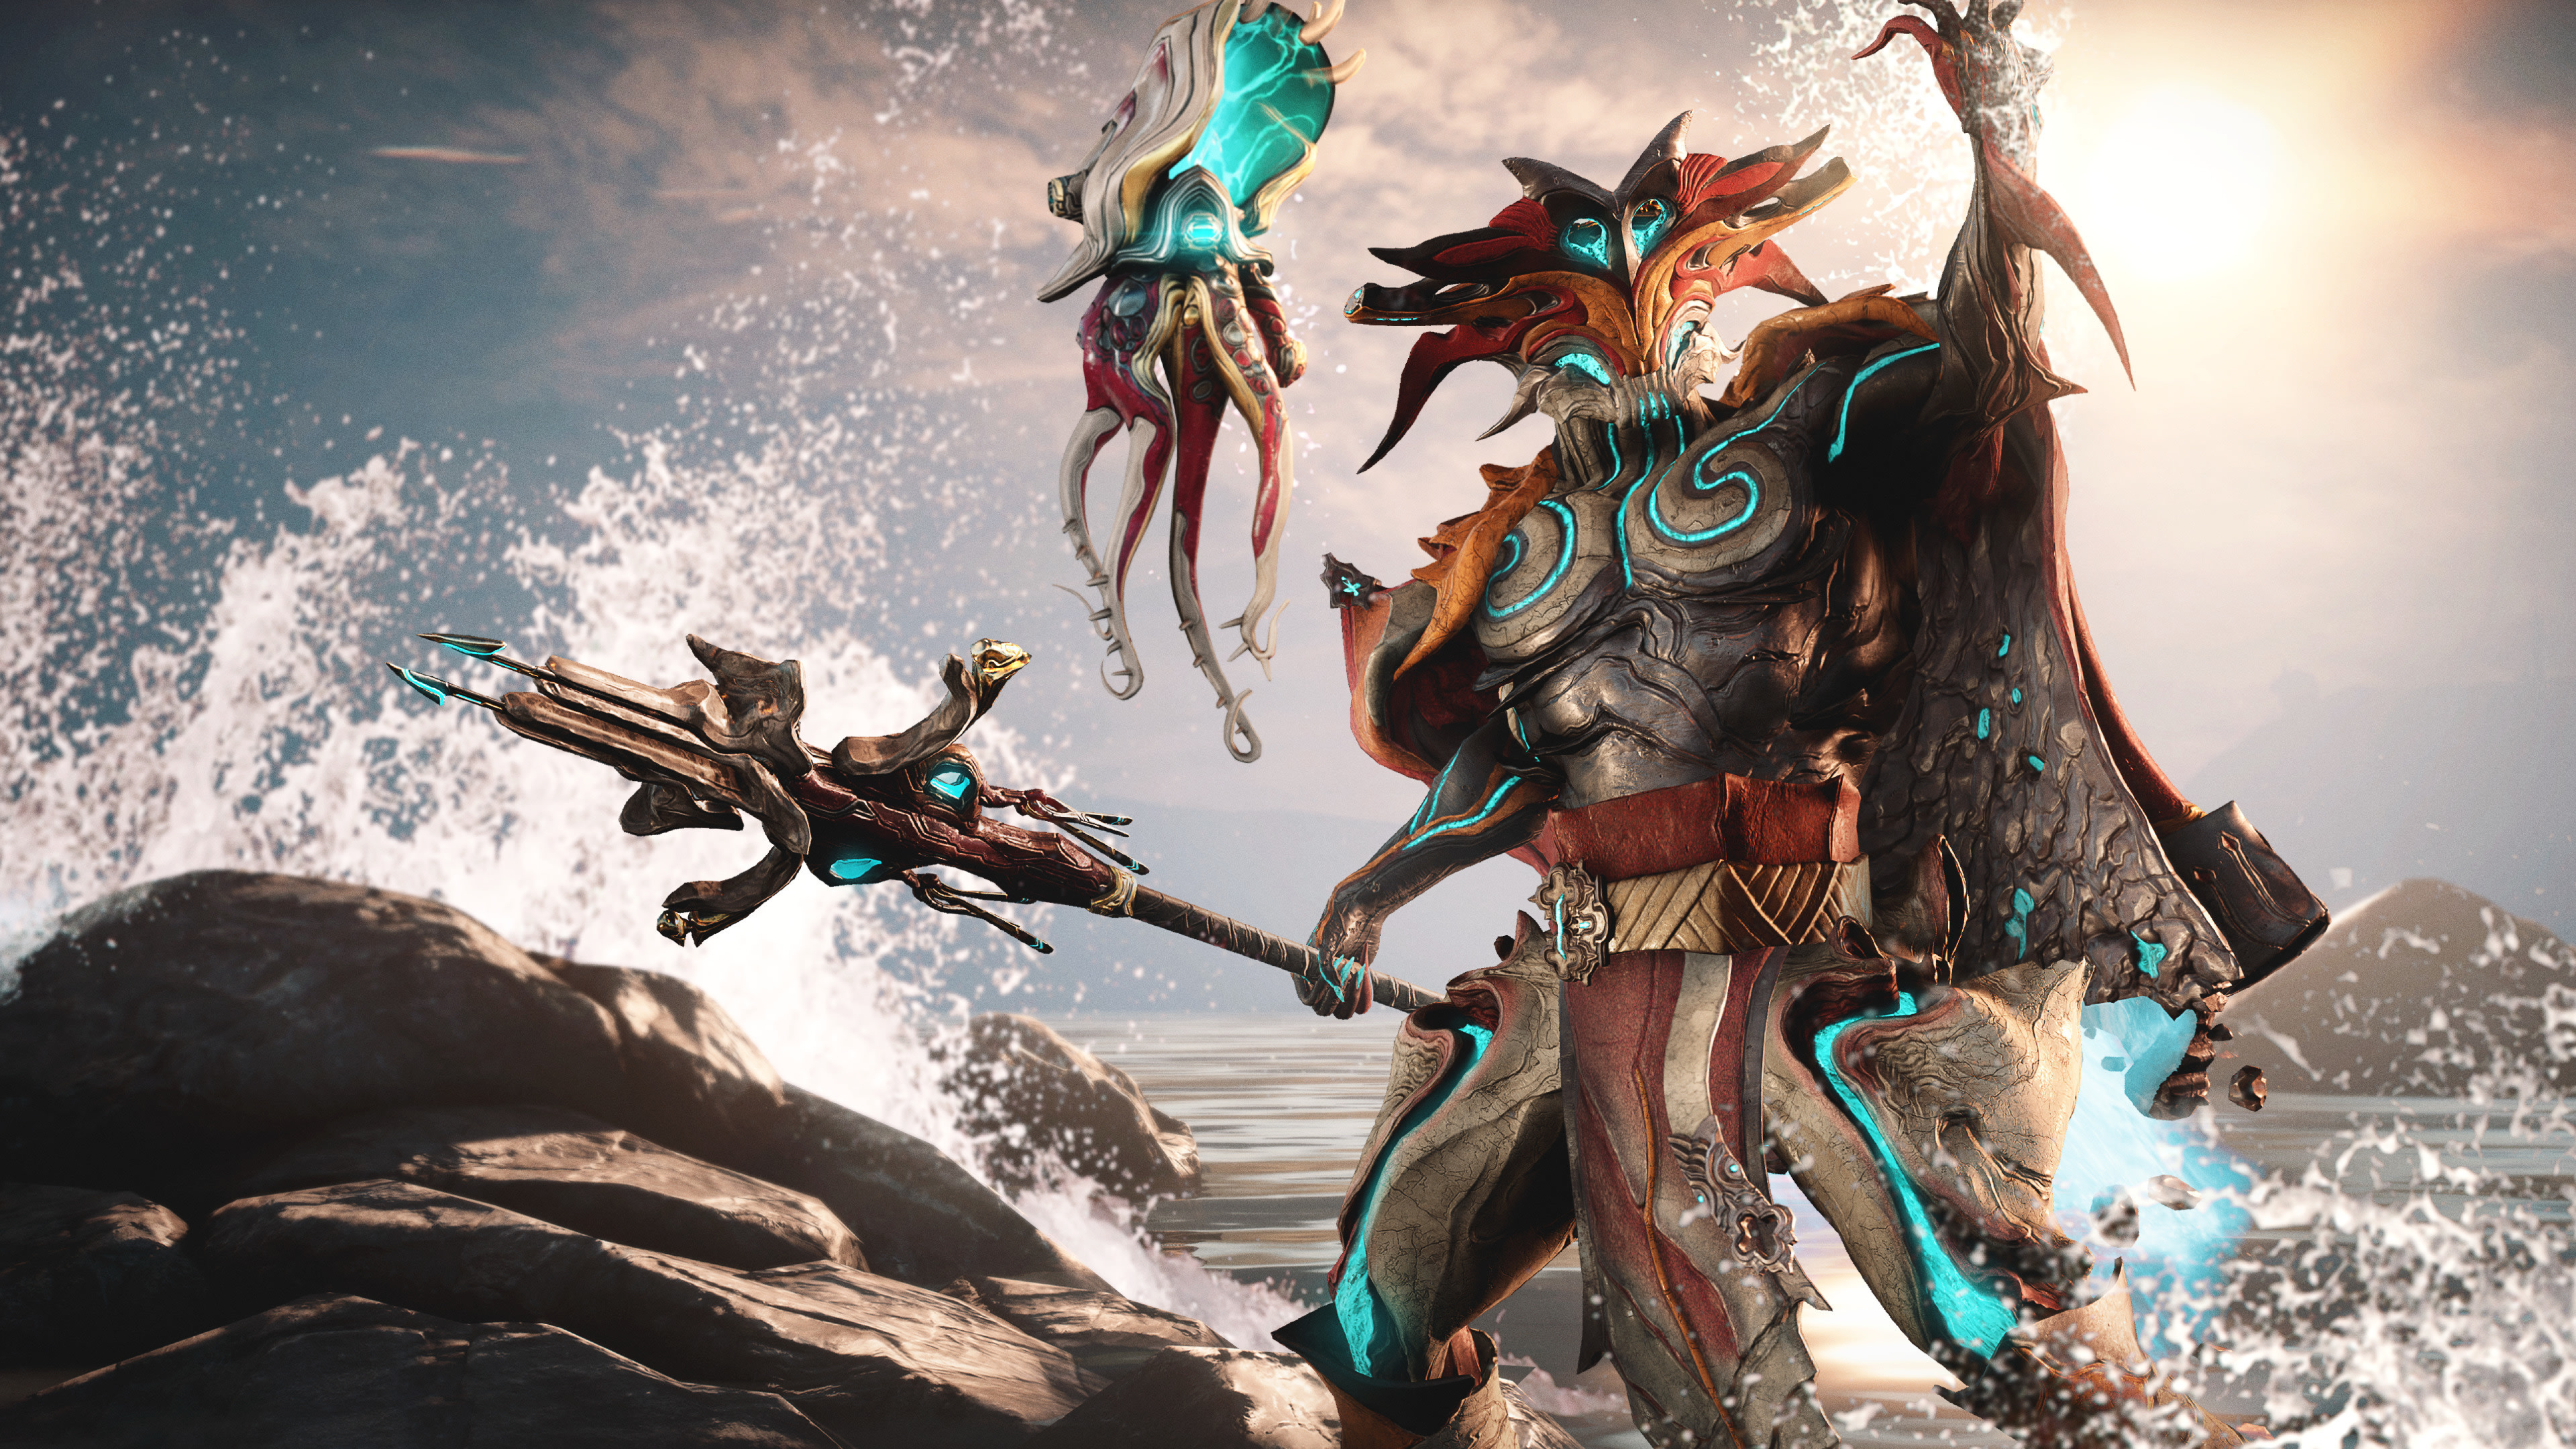 Warframe Official Poster Wallpaper in 5120x2880 Resolution